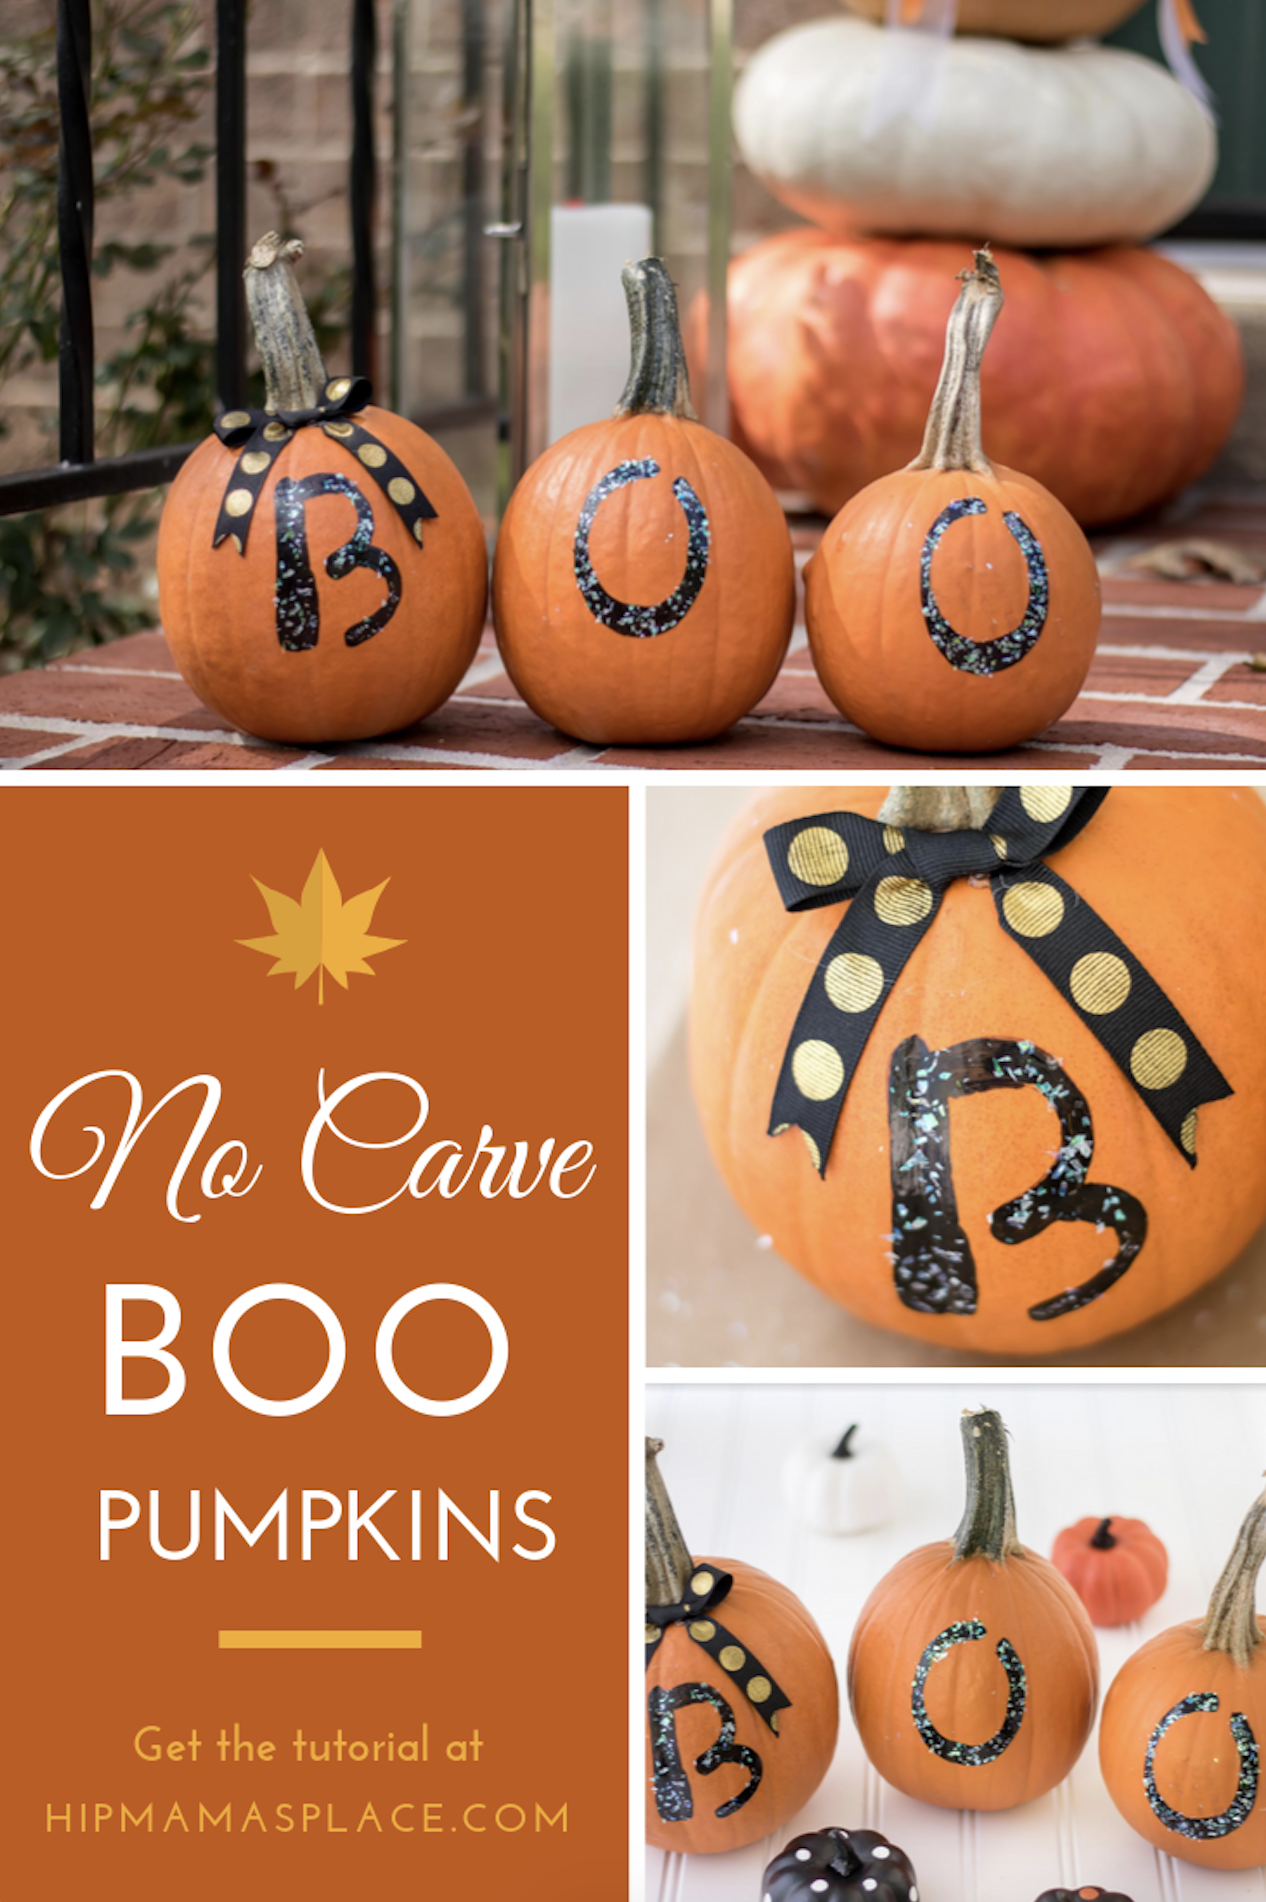 Here\'s a great idea for an easy, fun Fall craft to make with your family: No Carve Boo Pumpkins! Show the spirit of Halloween.. without as much mess! #fall #pumpkins #homedecor #falldecor #pumpkindecor #decorideas #Halloween #Halloweendecor